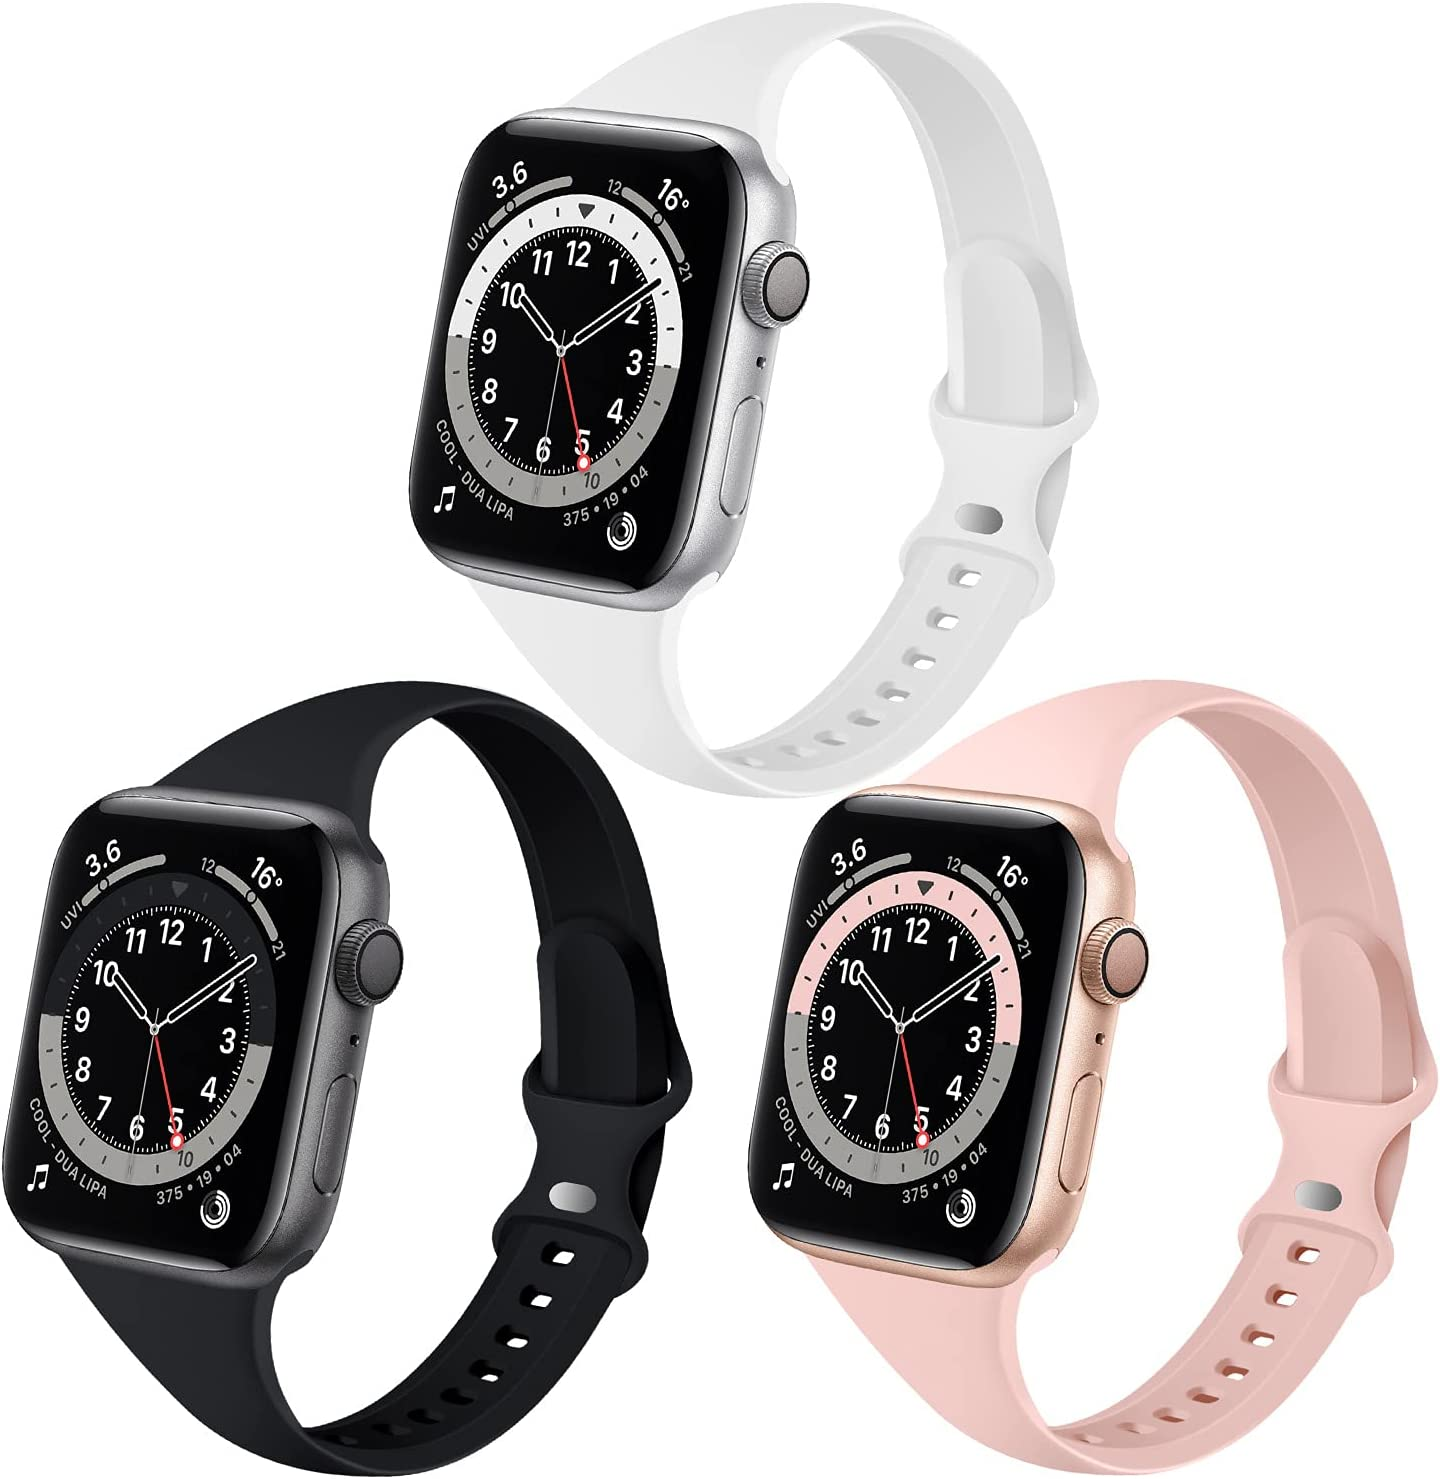 QRose Bands Compatible with Apple Watch 38mm 40mm, 3 Pack Slim Thin Narrow Replacement Silicone Sport Strap for iWatch Series SE 1/2/3/4/5/6, Black/White/Pink Sand 38mm/40mm